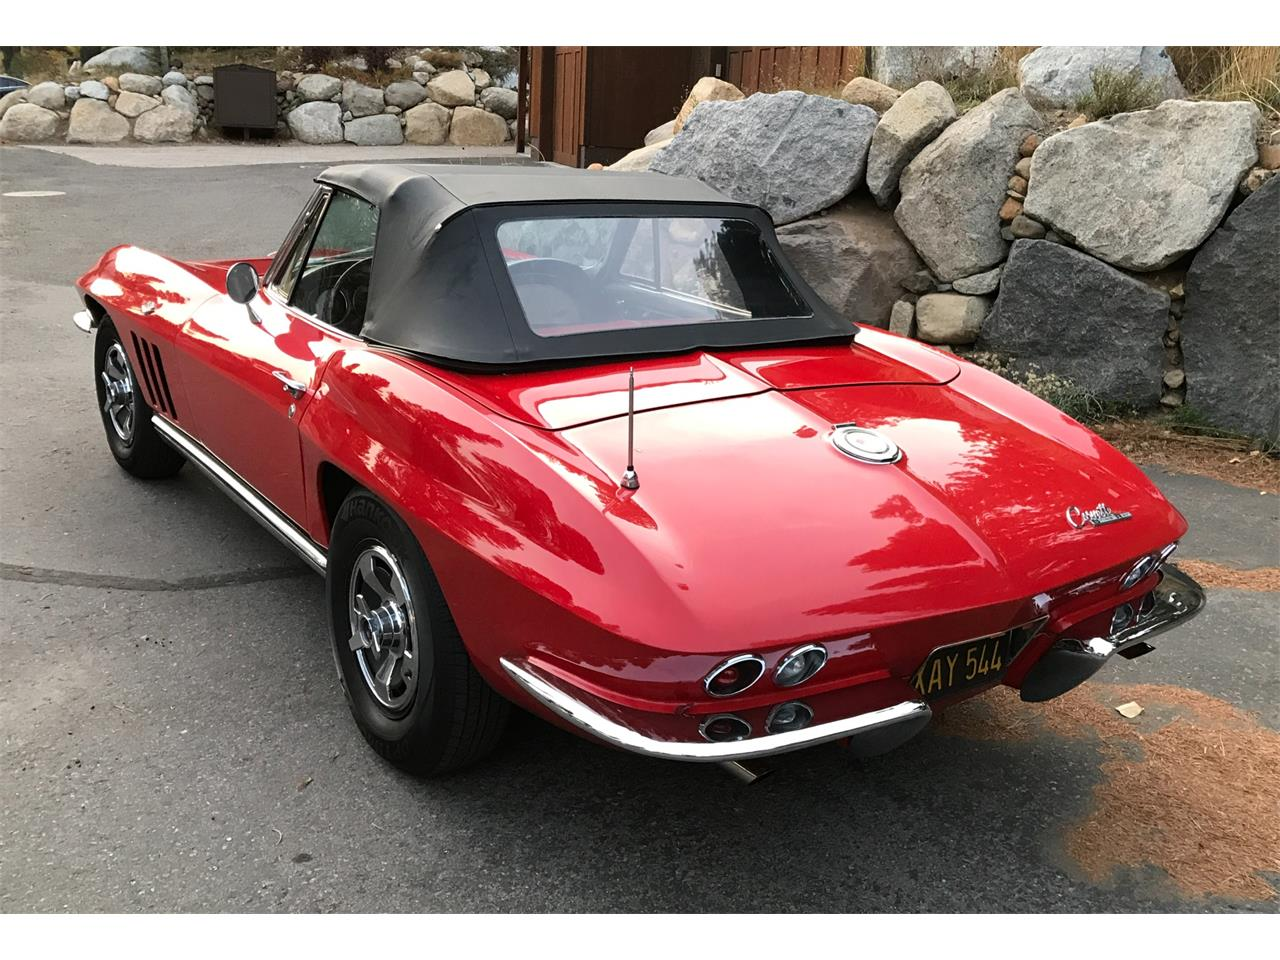 Large Picture of '65 Chevrolet Corvette located in Olympic Valley California - $65,000.00 Offered by a Private Seller - OH4J